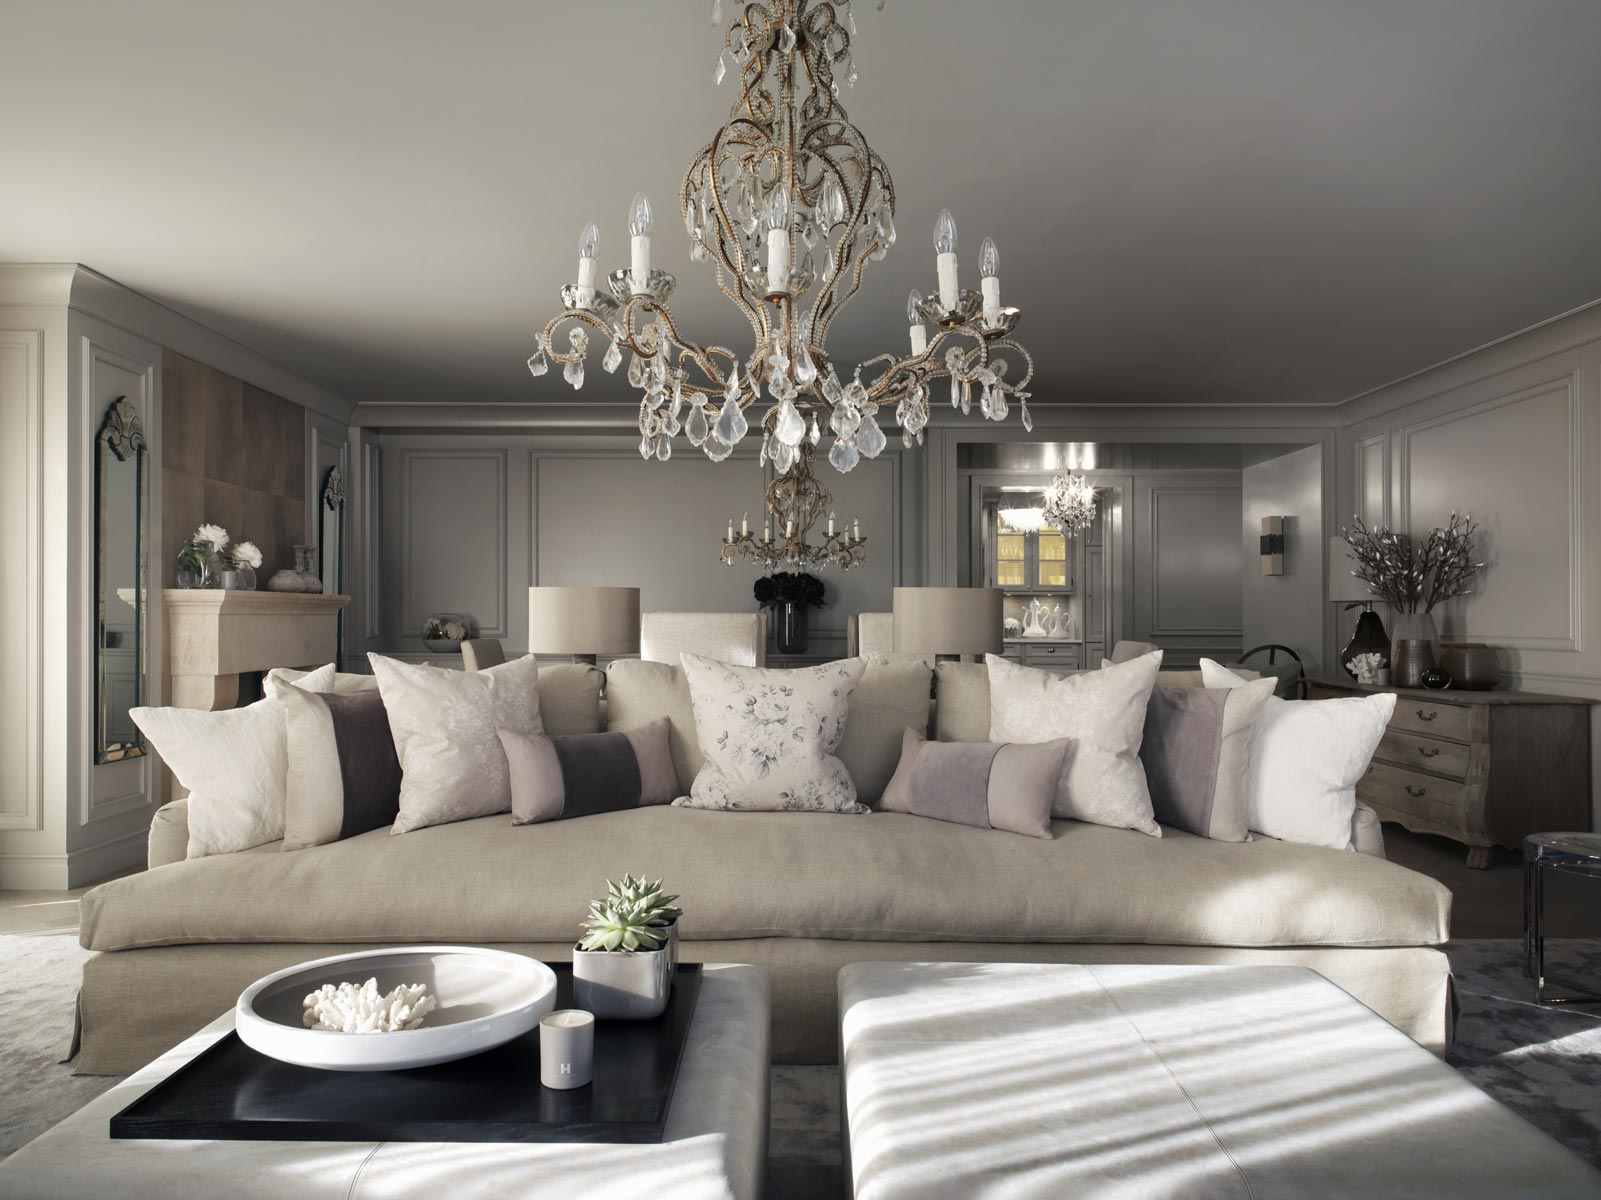 Top 10 kelly hoppen design ideas - Designer living room ideas ...